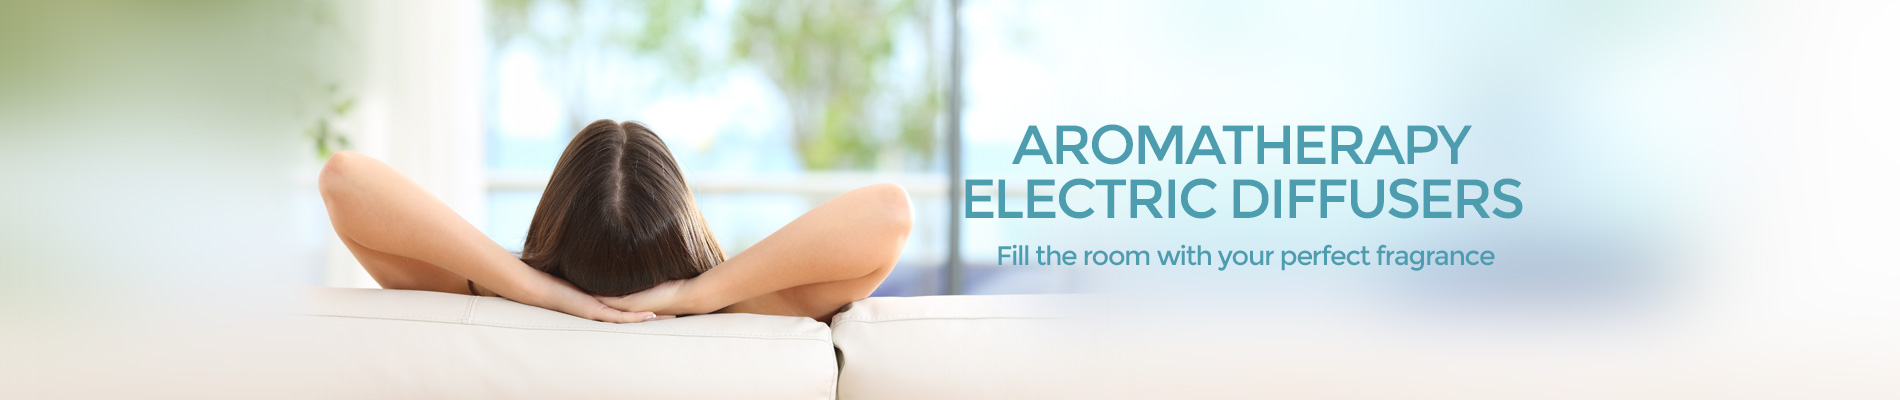 Aromatherapy Electric Diffusers from New Directions Aromatics